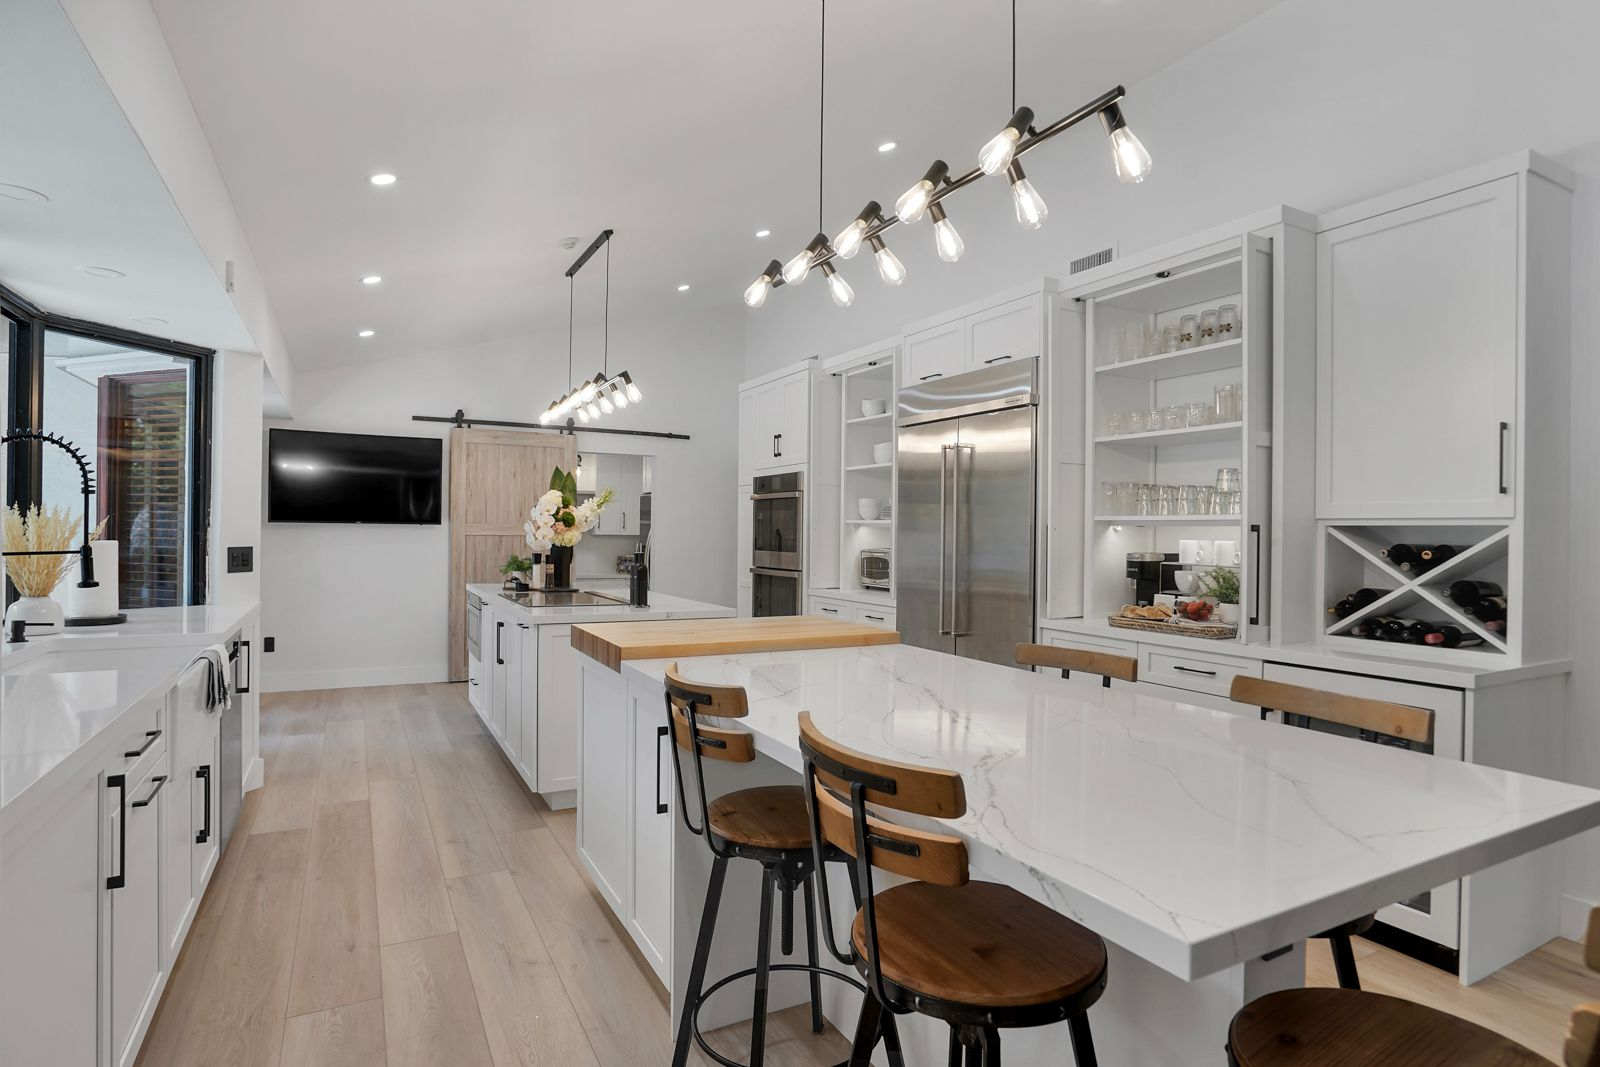 Kitchen Redesign in Pinecrest, Palmetto Bay, Coral Gables, Ocean Reef, Miami Beach, and South Miami